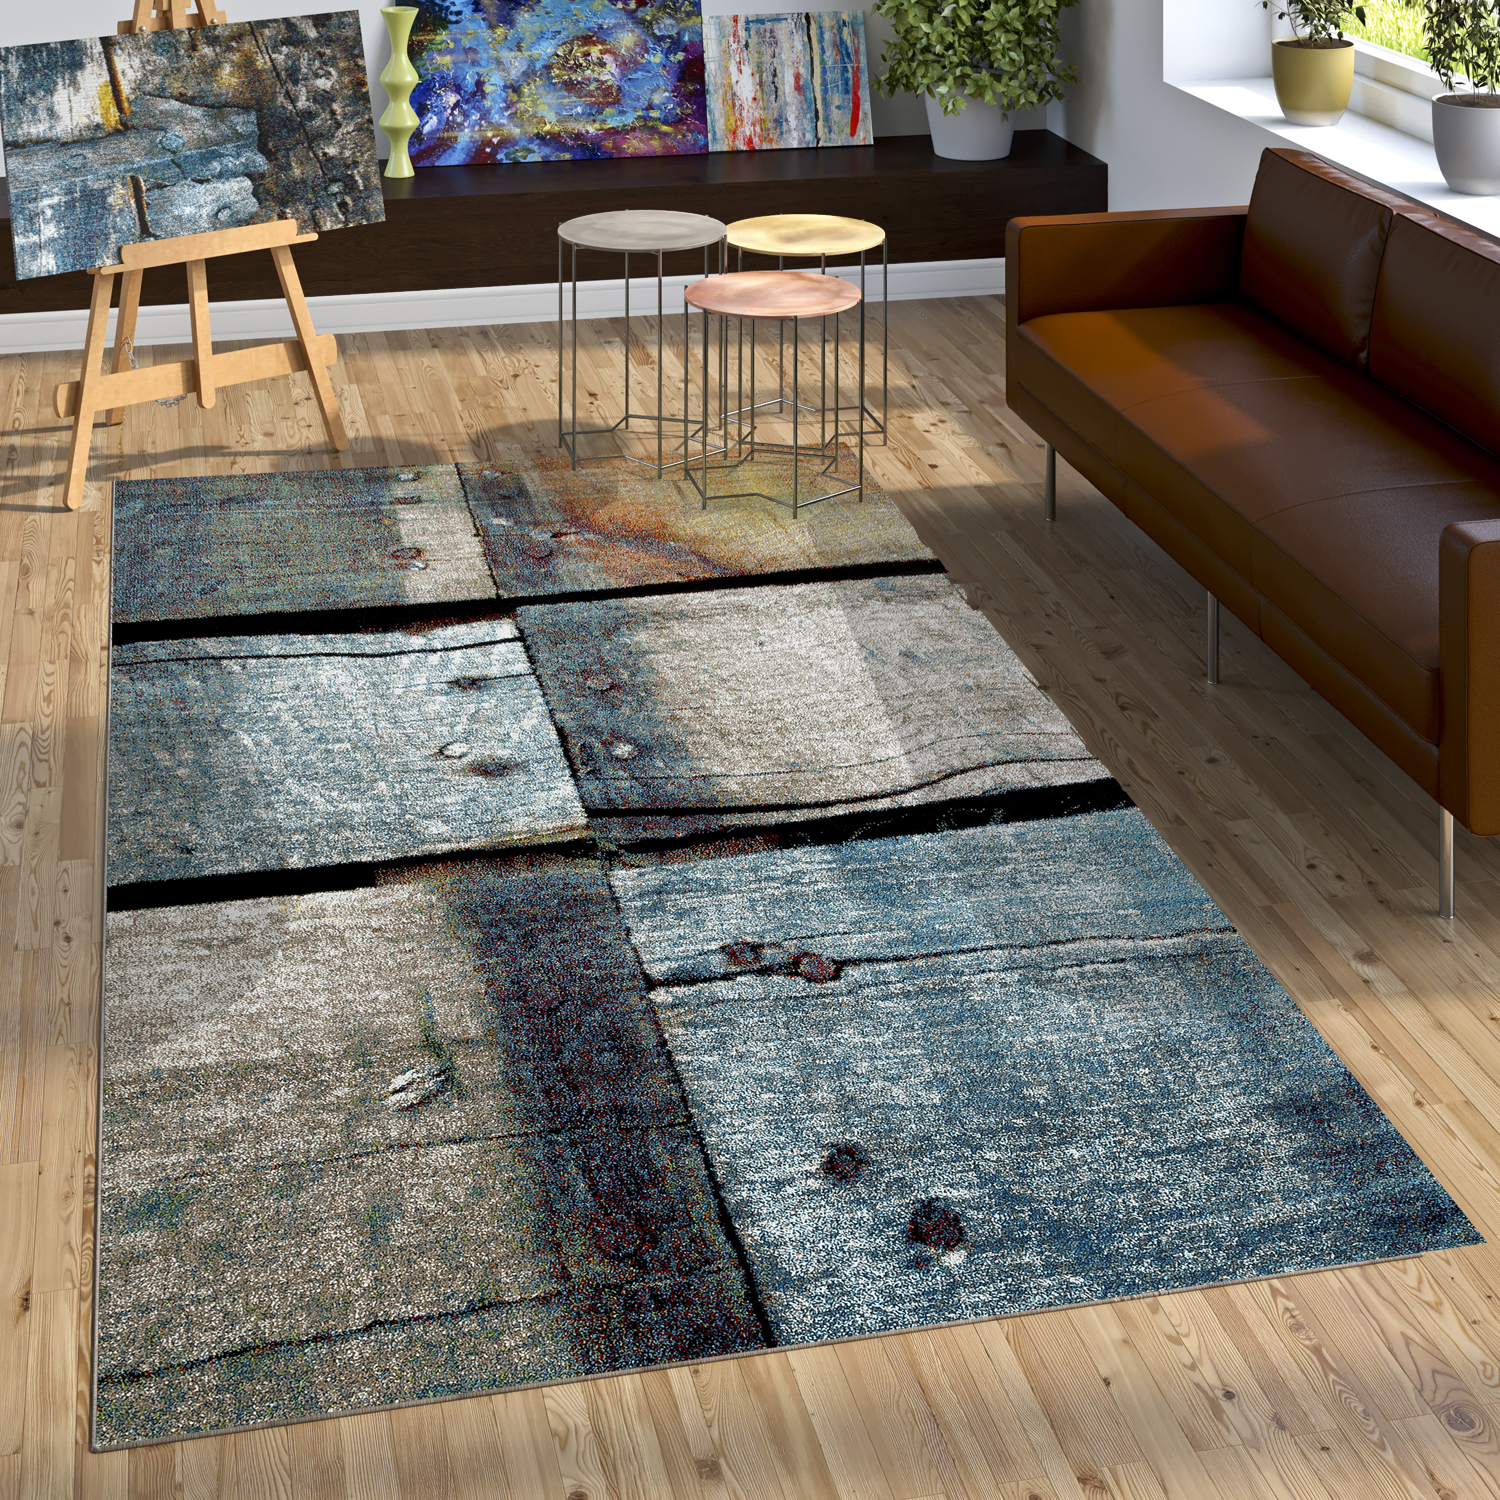 cr ateur tapis bois style effet relief naturel tons bleu gris rouille tapis tapis poil ras. Black Bedroom Furniture Sets. Home Design Ideas